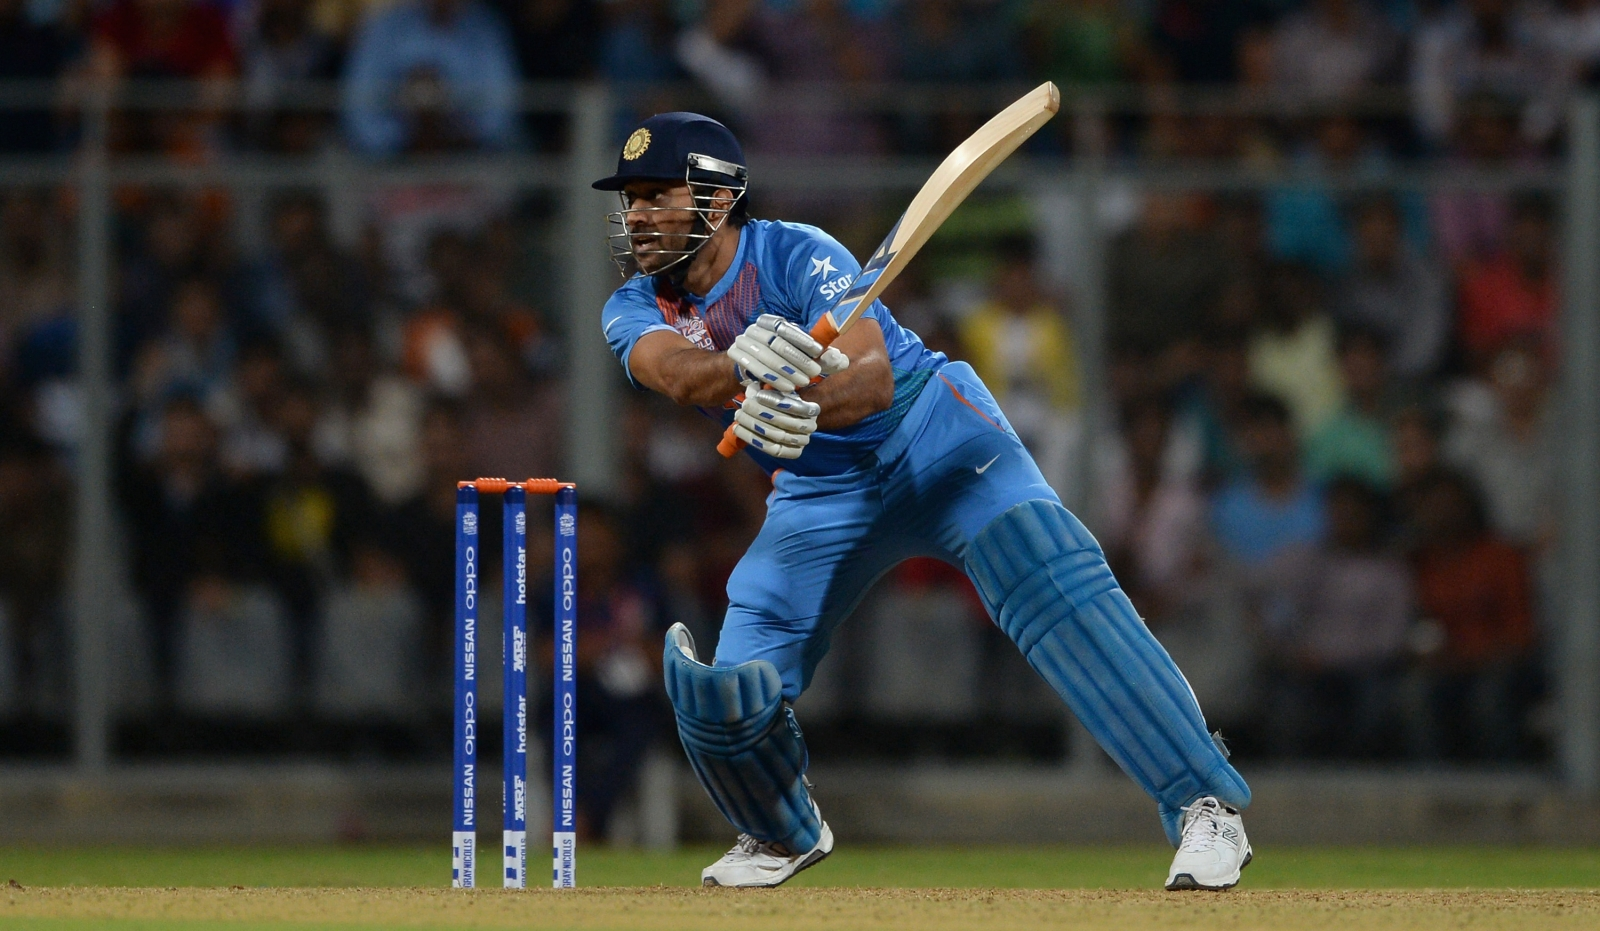 MS Dhoni Steps Down As Captain Of Indian Cricket Team